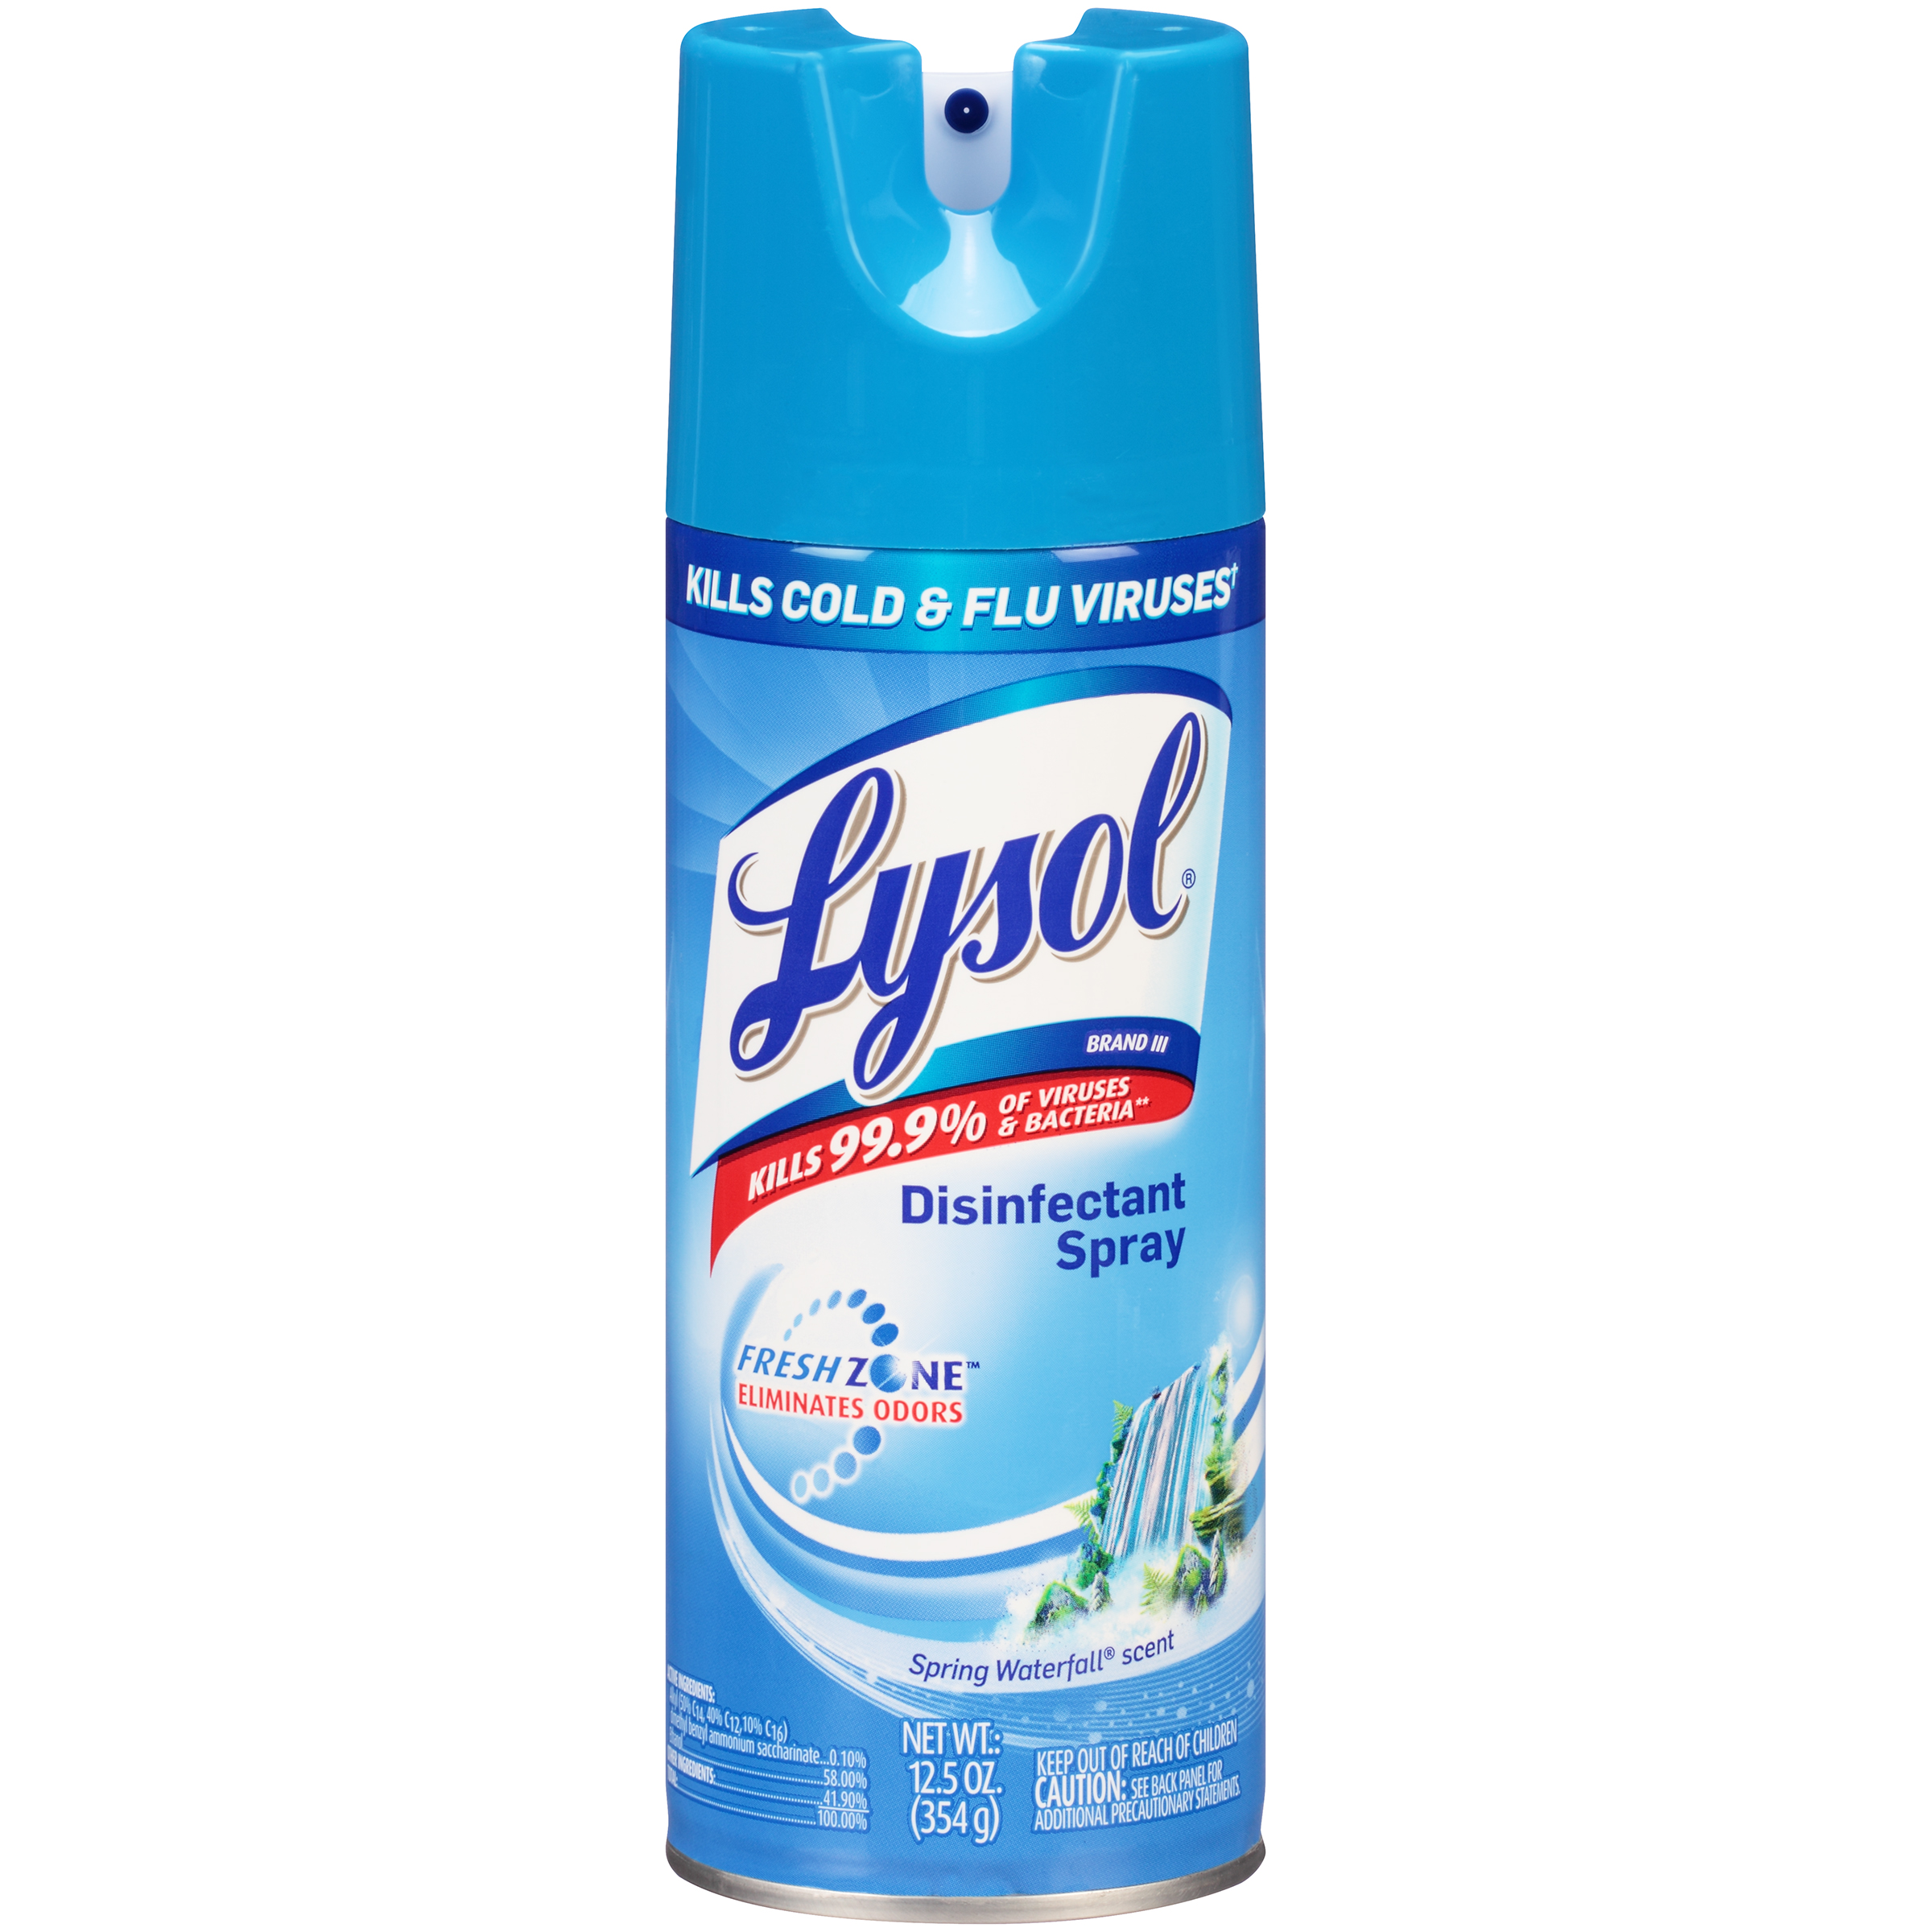 Lysol Disinfectant Spray Spring Waterfall Scent 12 5 Oz